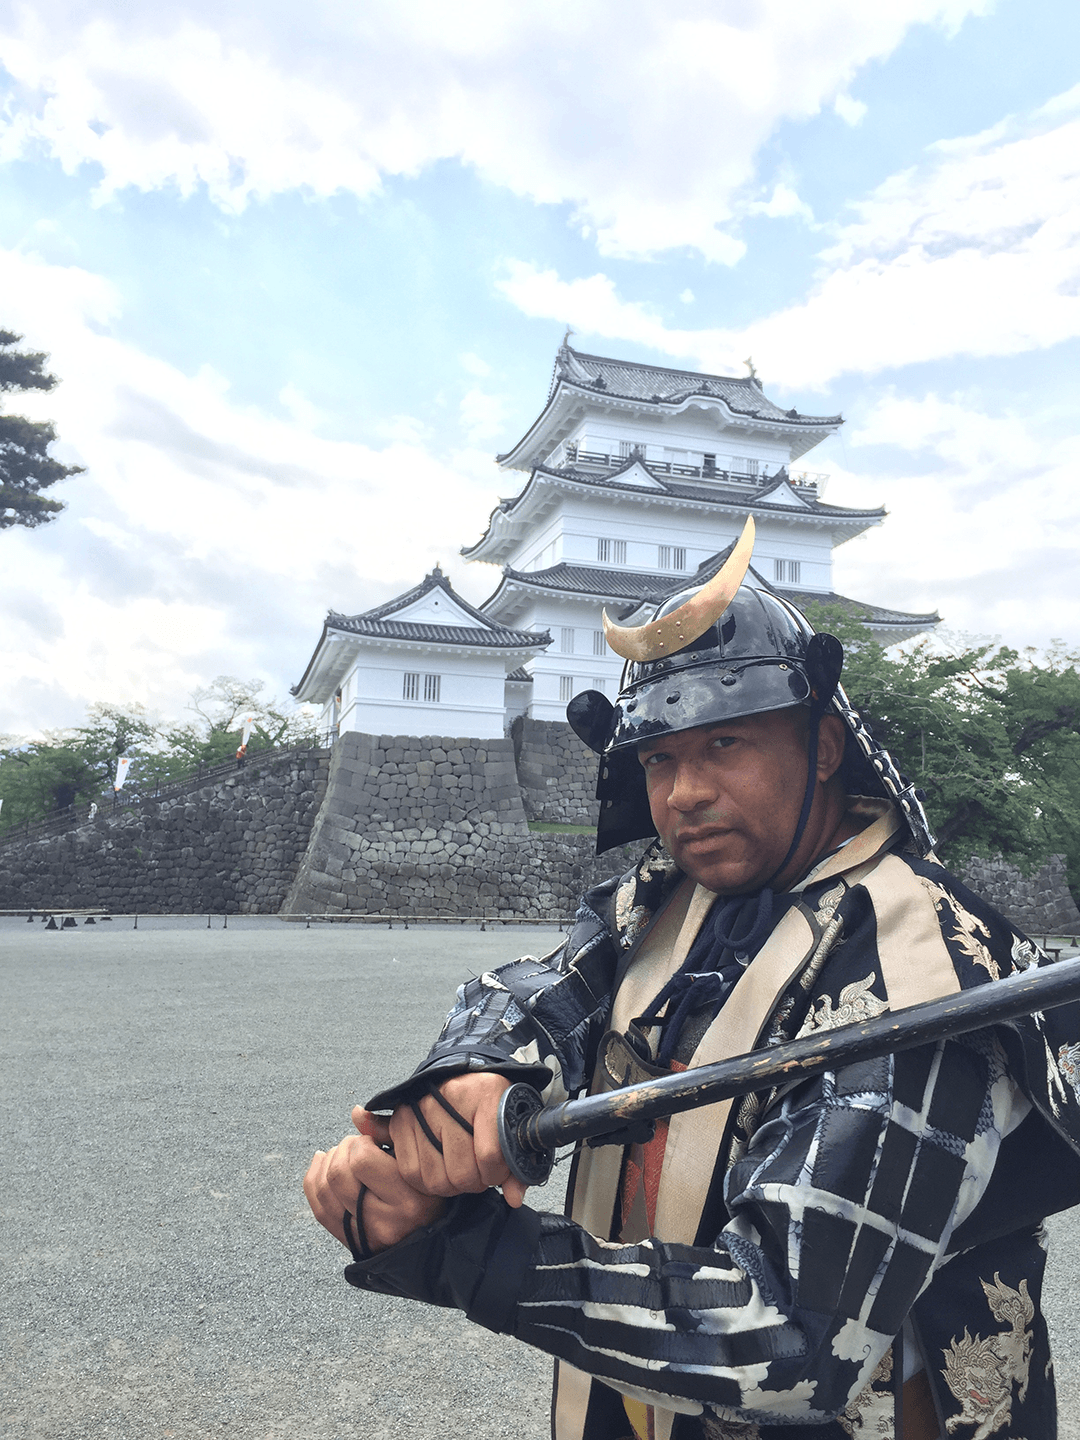 Show Notes Gear and Links - Odawara Castle Japan Guide Review Video - 9 Reasons To See Odawara Castle Kanagawa Japan 🇯🇵 🏯 🌸